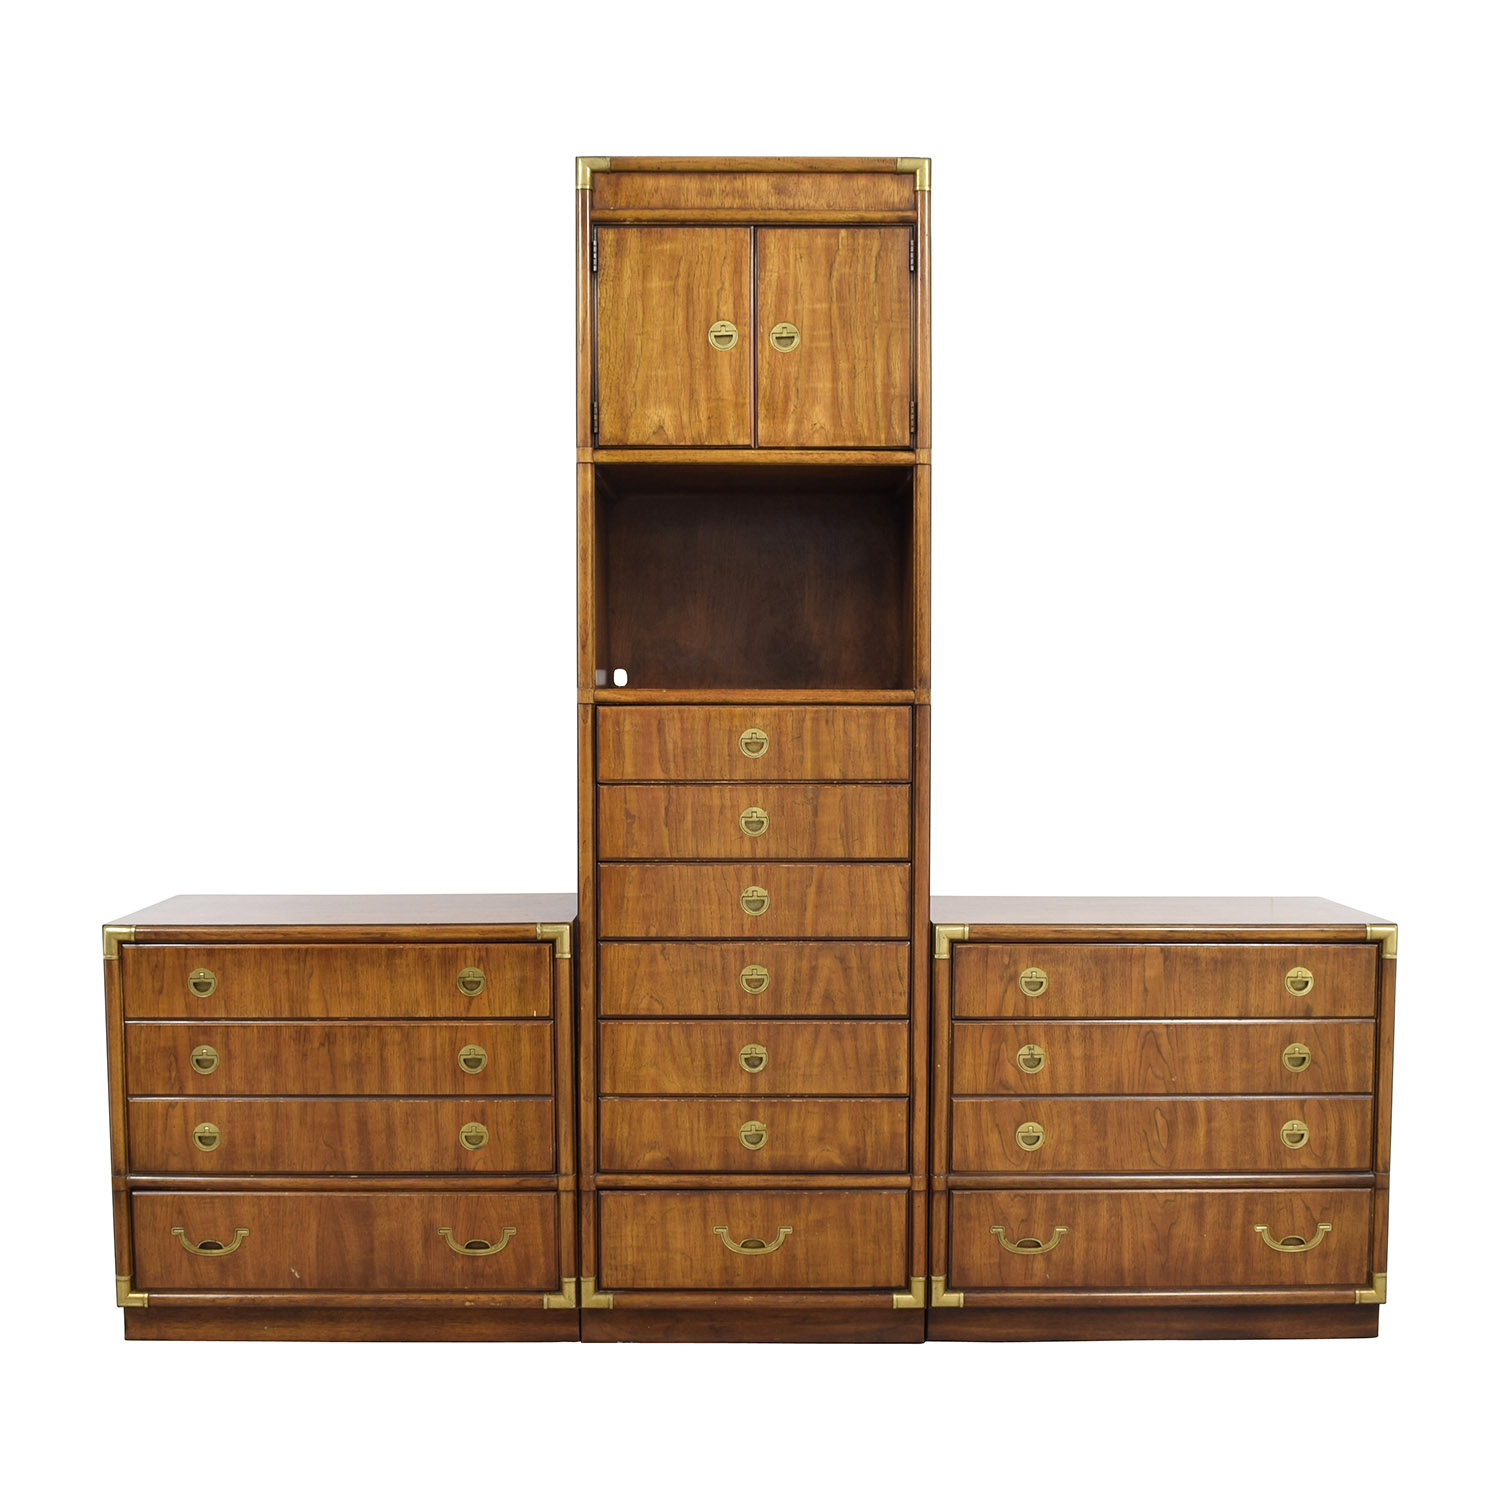 Drexel Drexel Three Piece Dresser Cabinet Set coupon